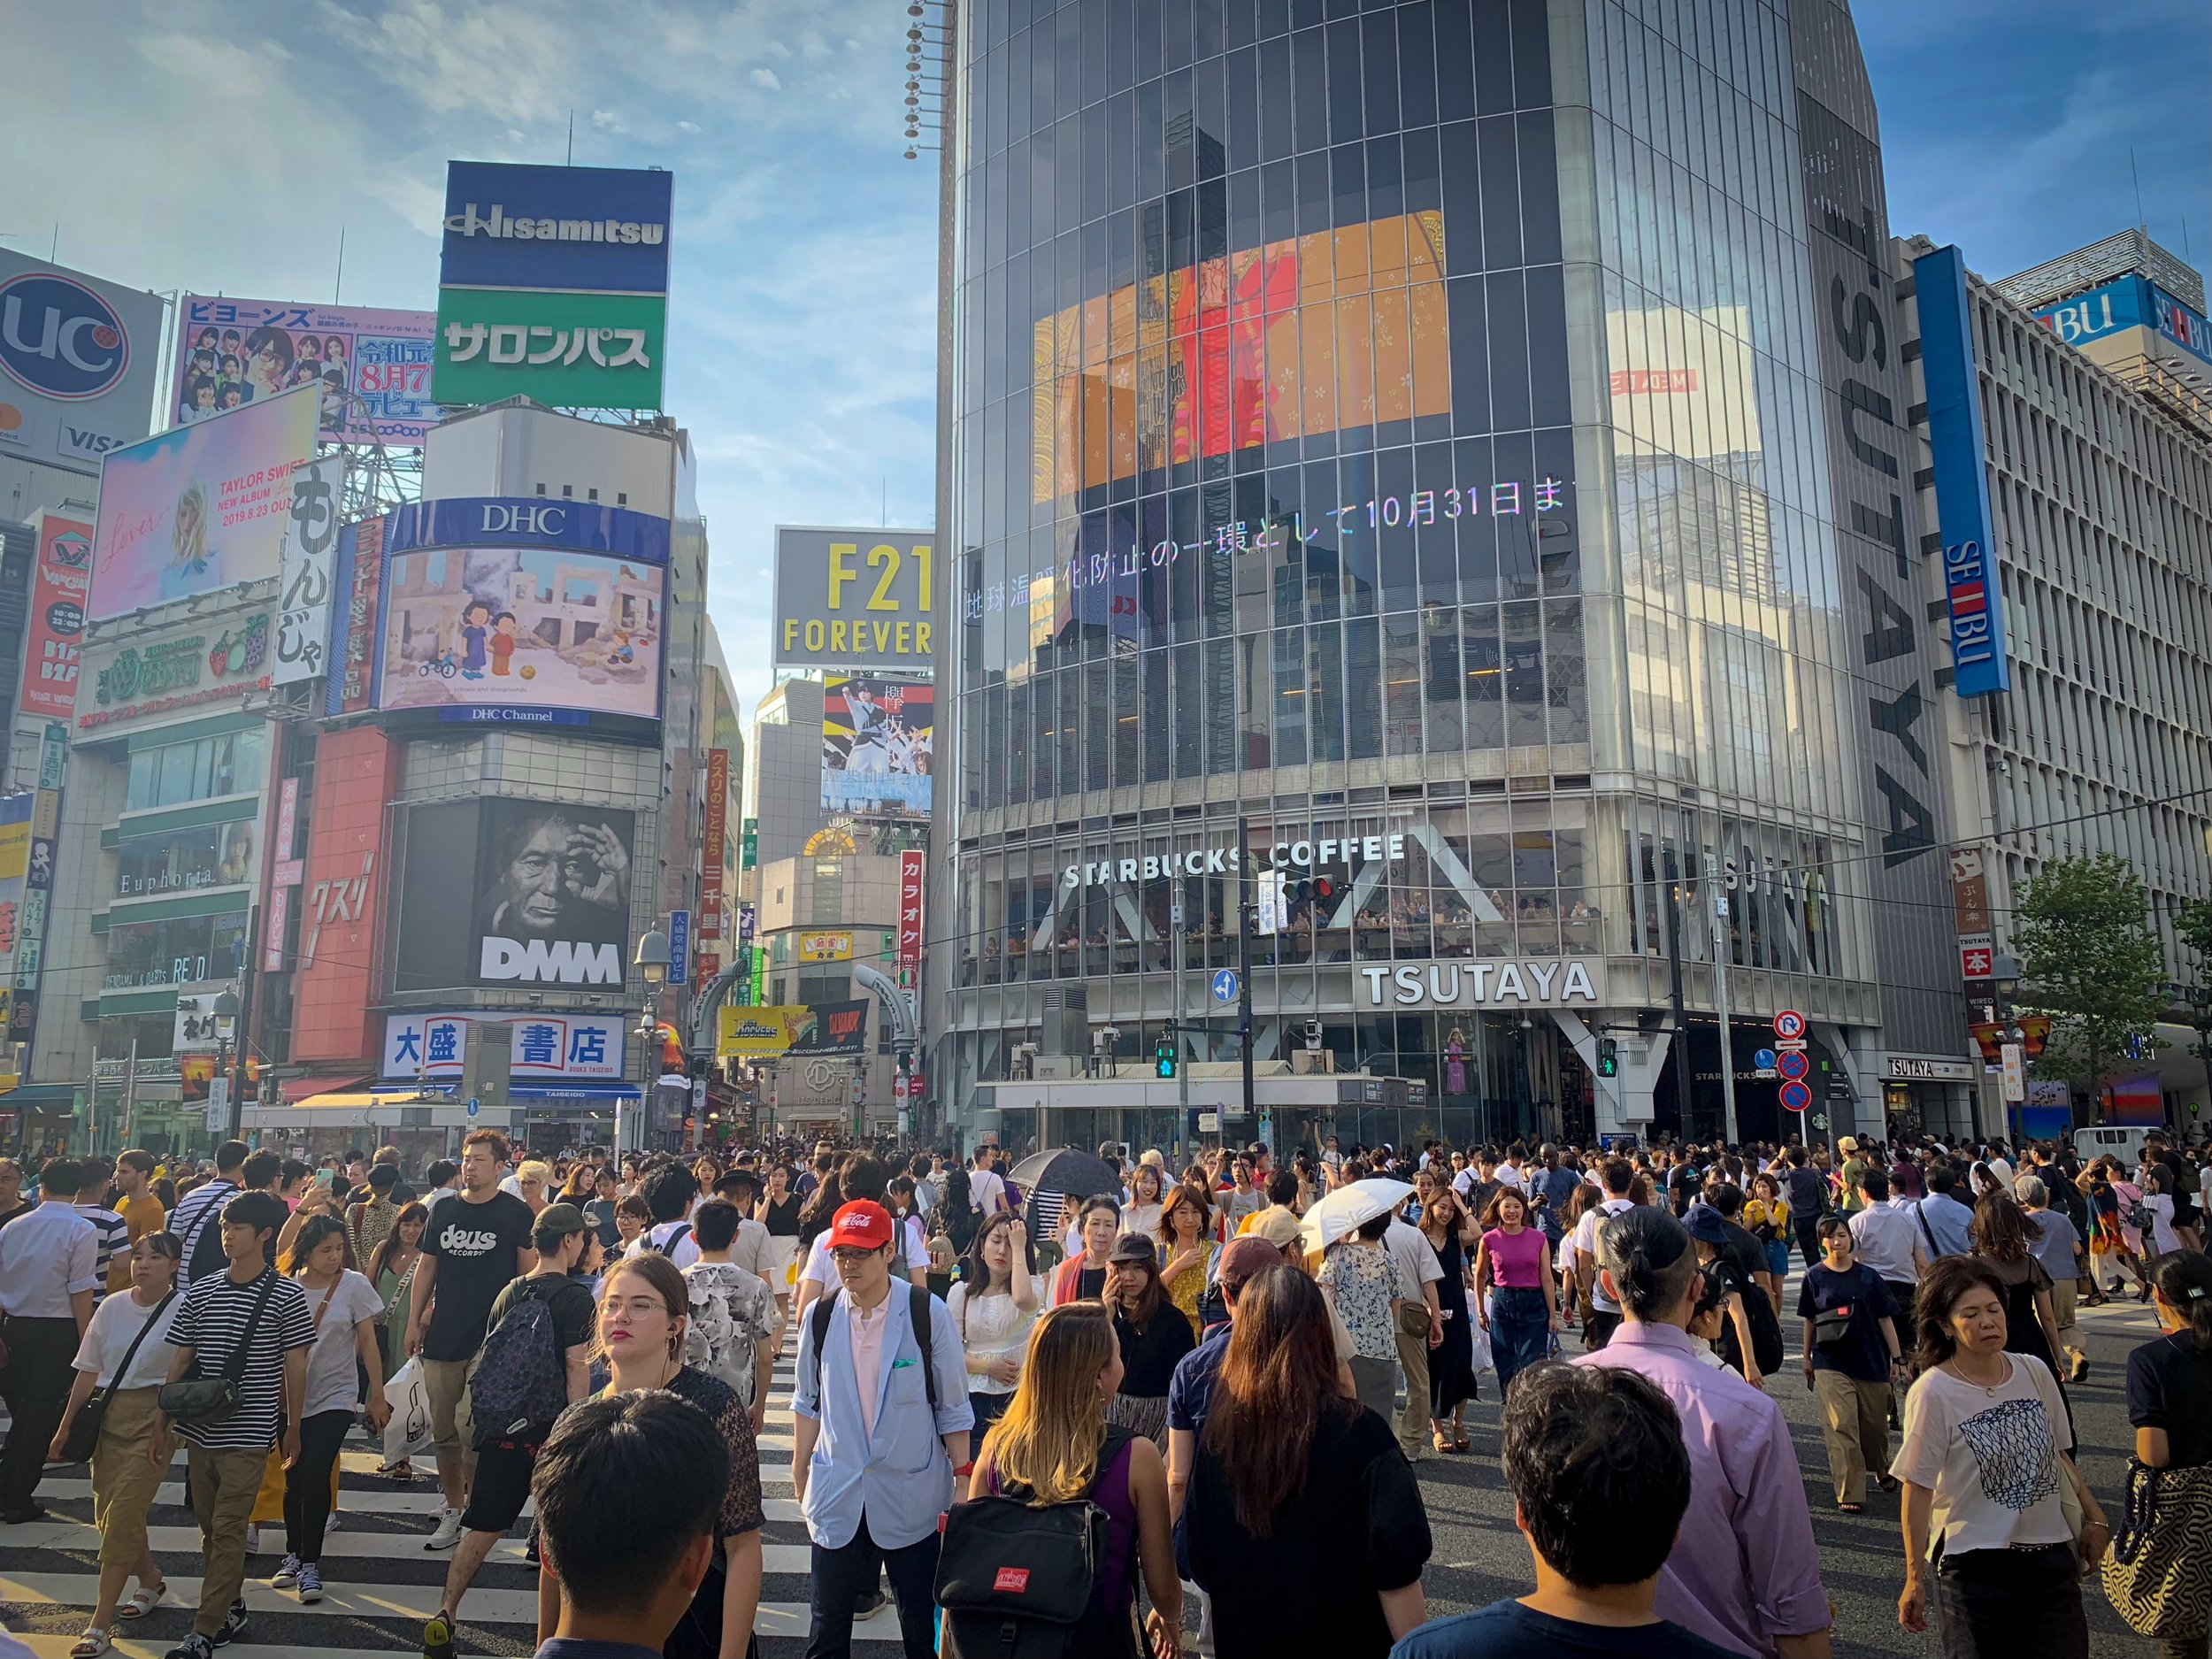 """The Shibuya Crossing is famous for its """"scramble"""", and is the busiest pedestrian crossing in the world."""